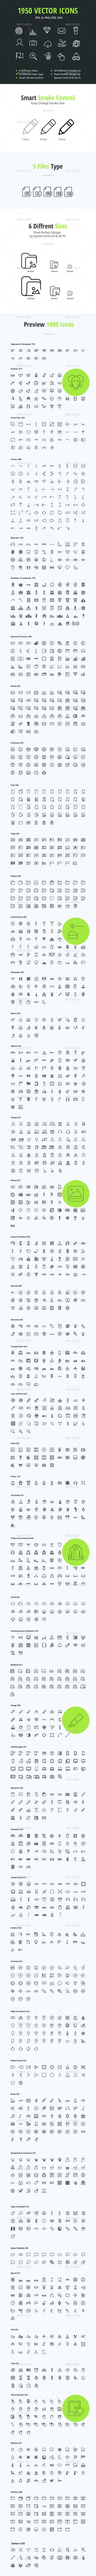 GraphicRiver 1950 Vector Icons 9053633